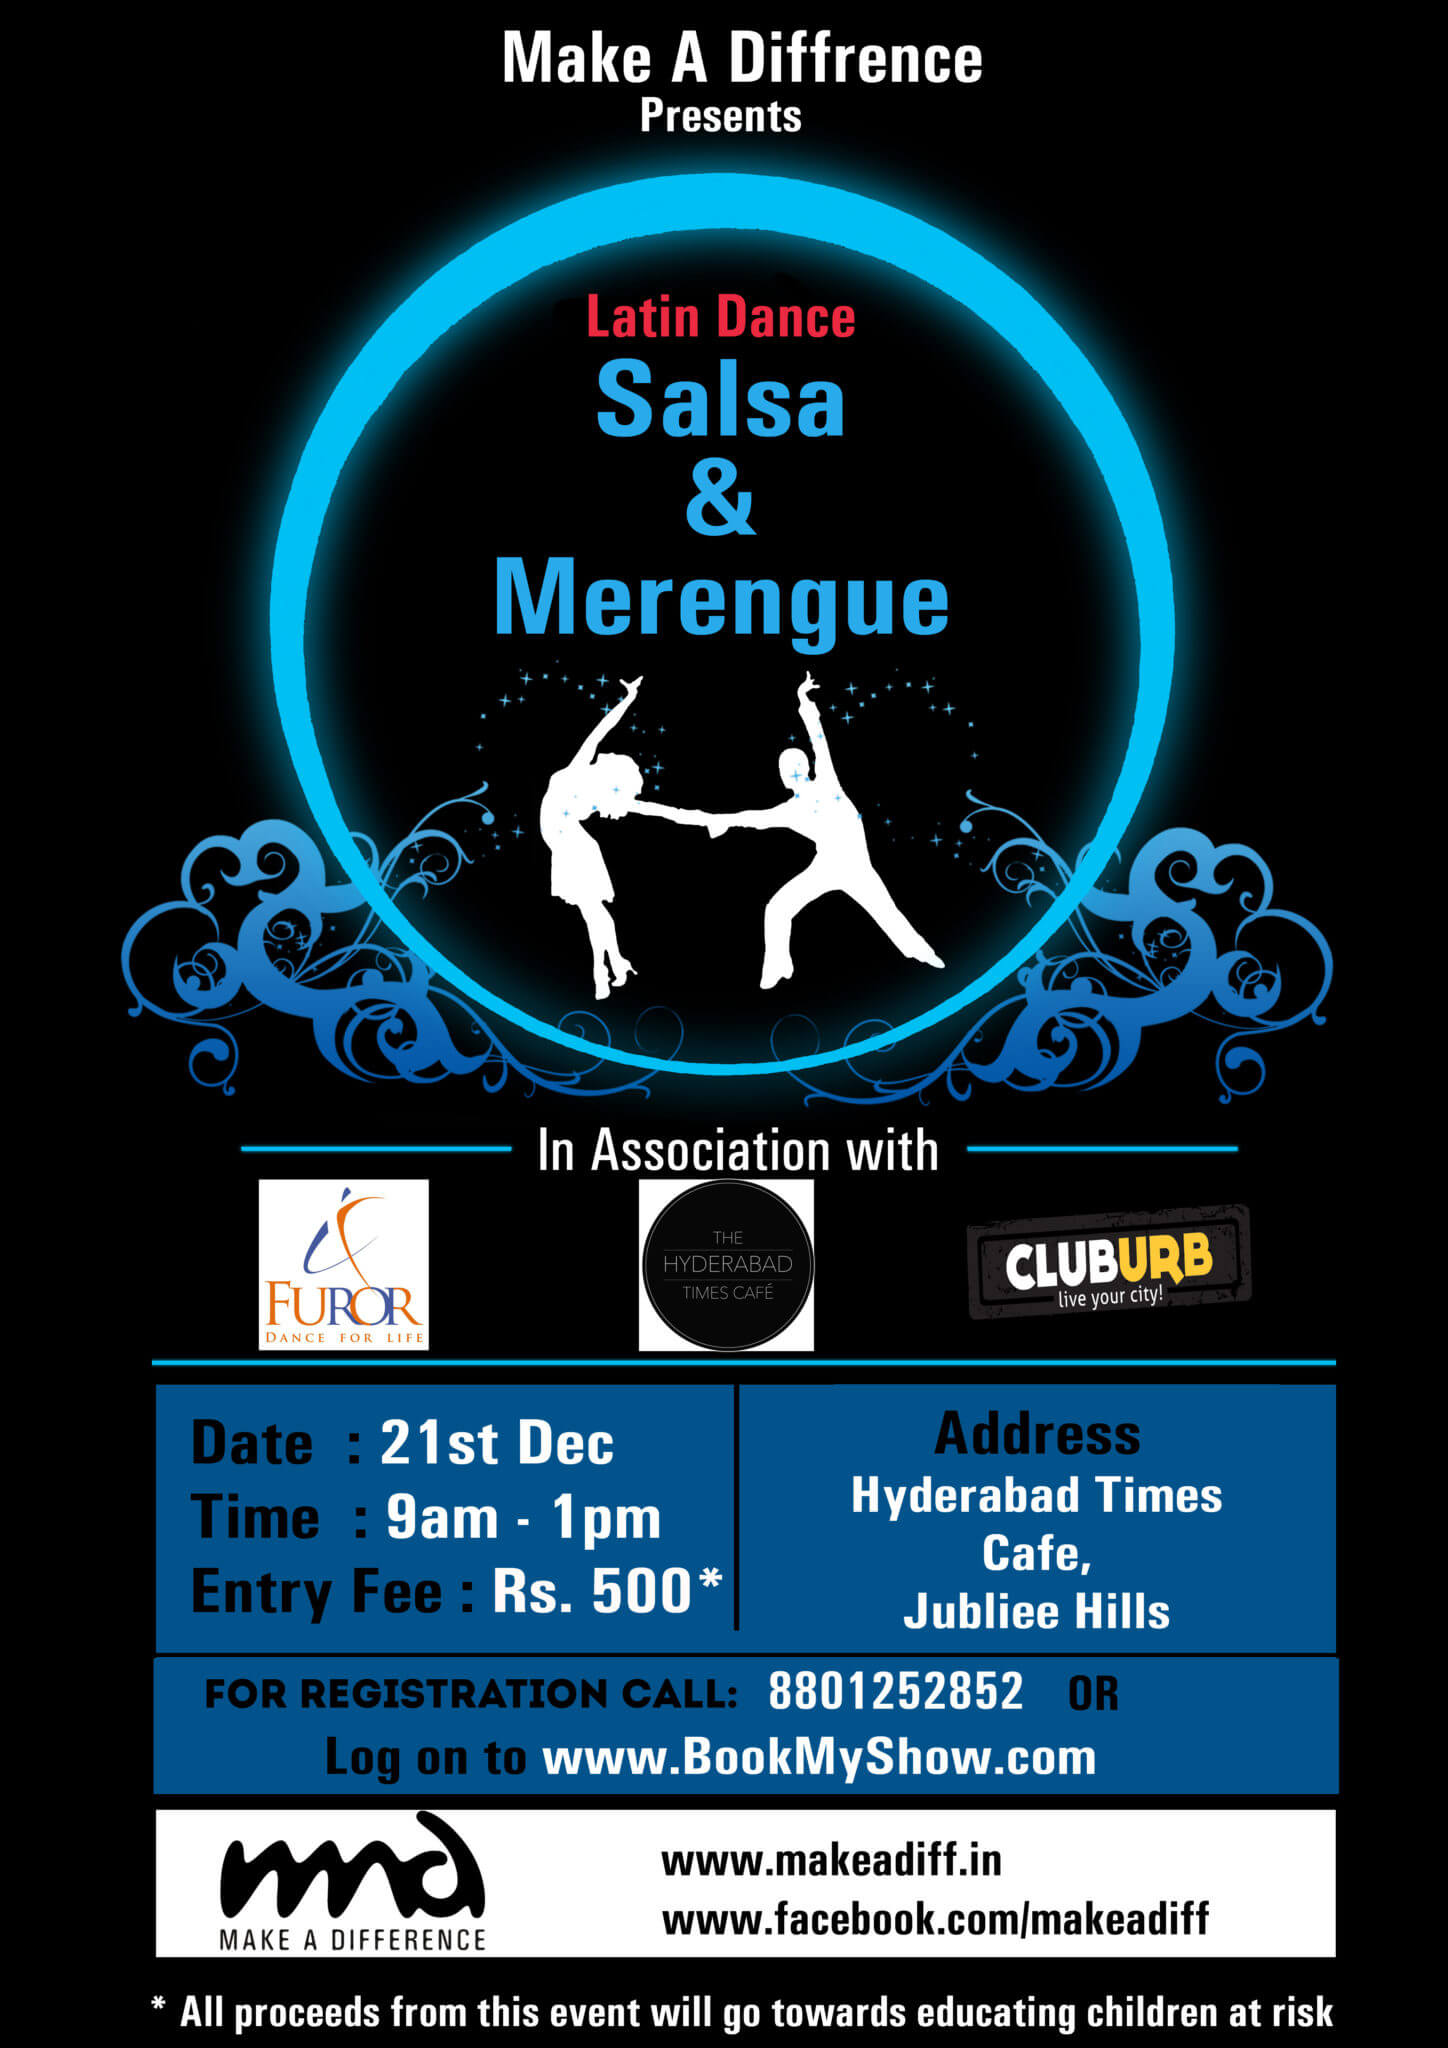 Introduction to Latin Partner Dance – Salsa & Merengue – a charity fundraiser for Make a Difference Foundation